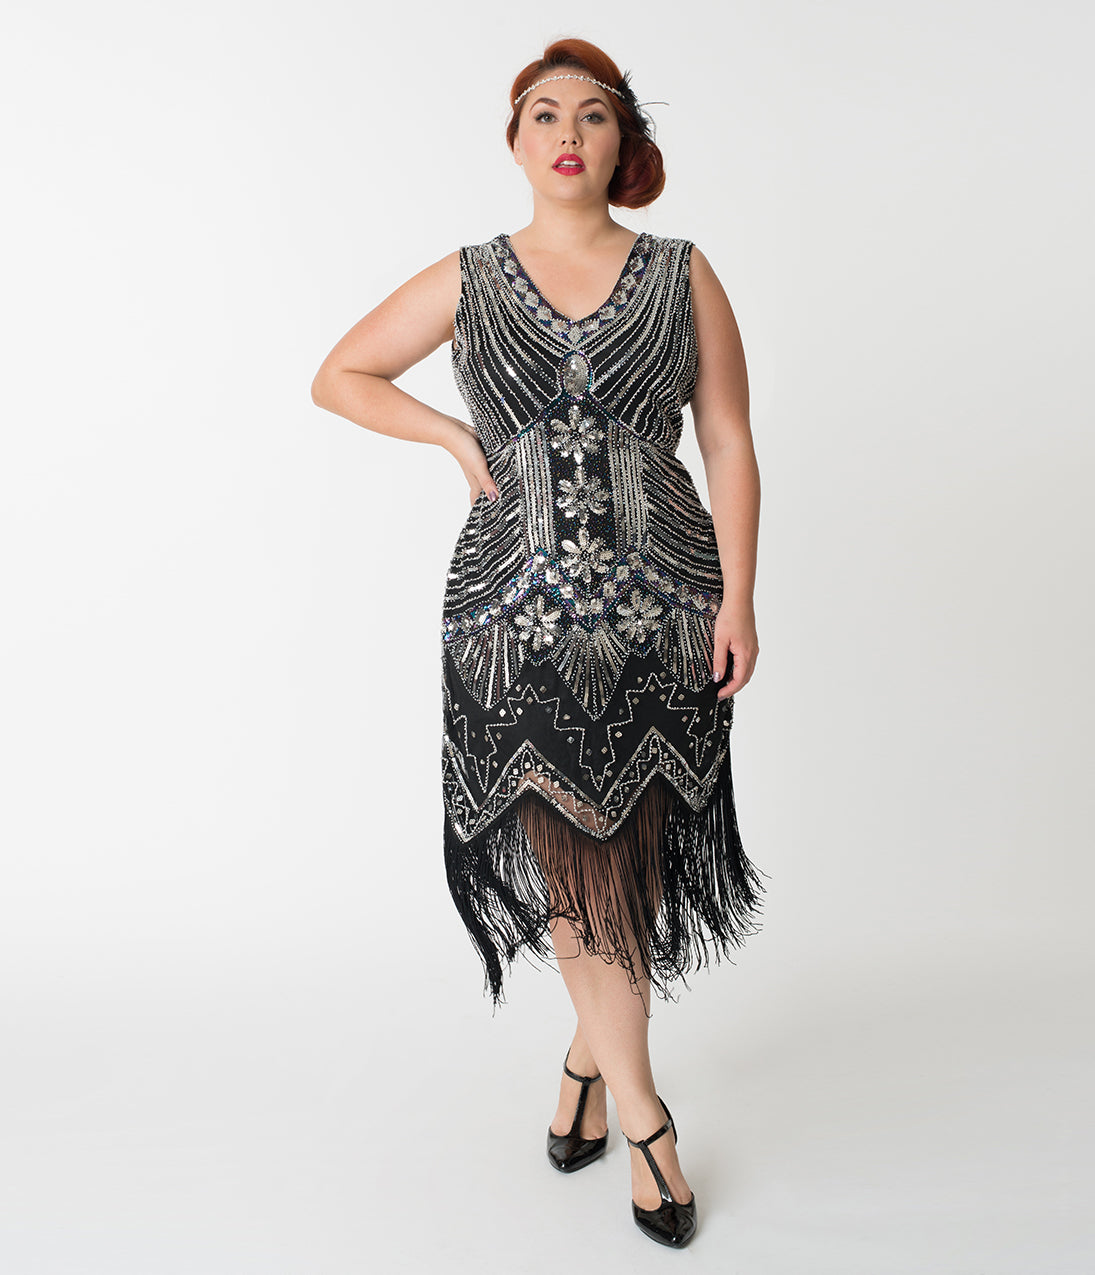 Roaring 20s Costumes- Flapper Costumes, Gangster Costumes Unique Vintage Plus Size 1920S Deco Silver  Black Veronique Fringe Flapper Dress $98.00 AT vintagedancer.com